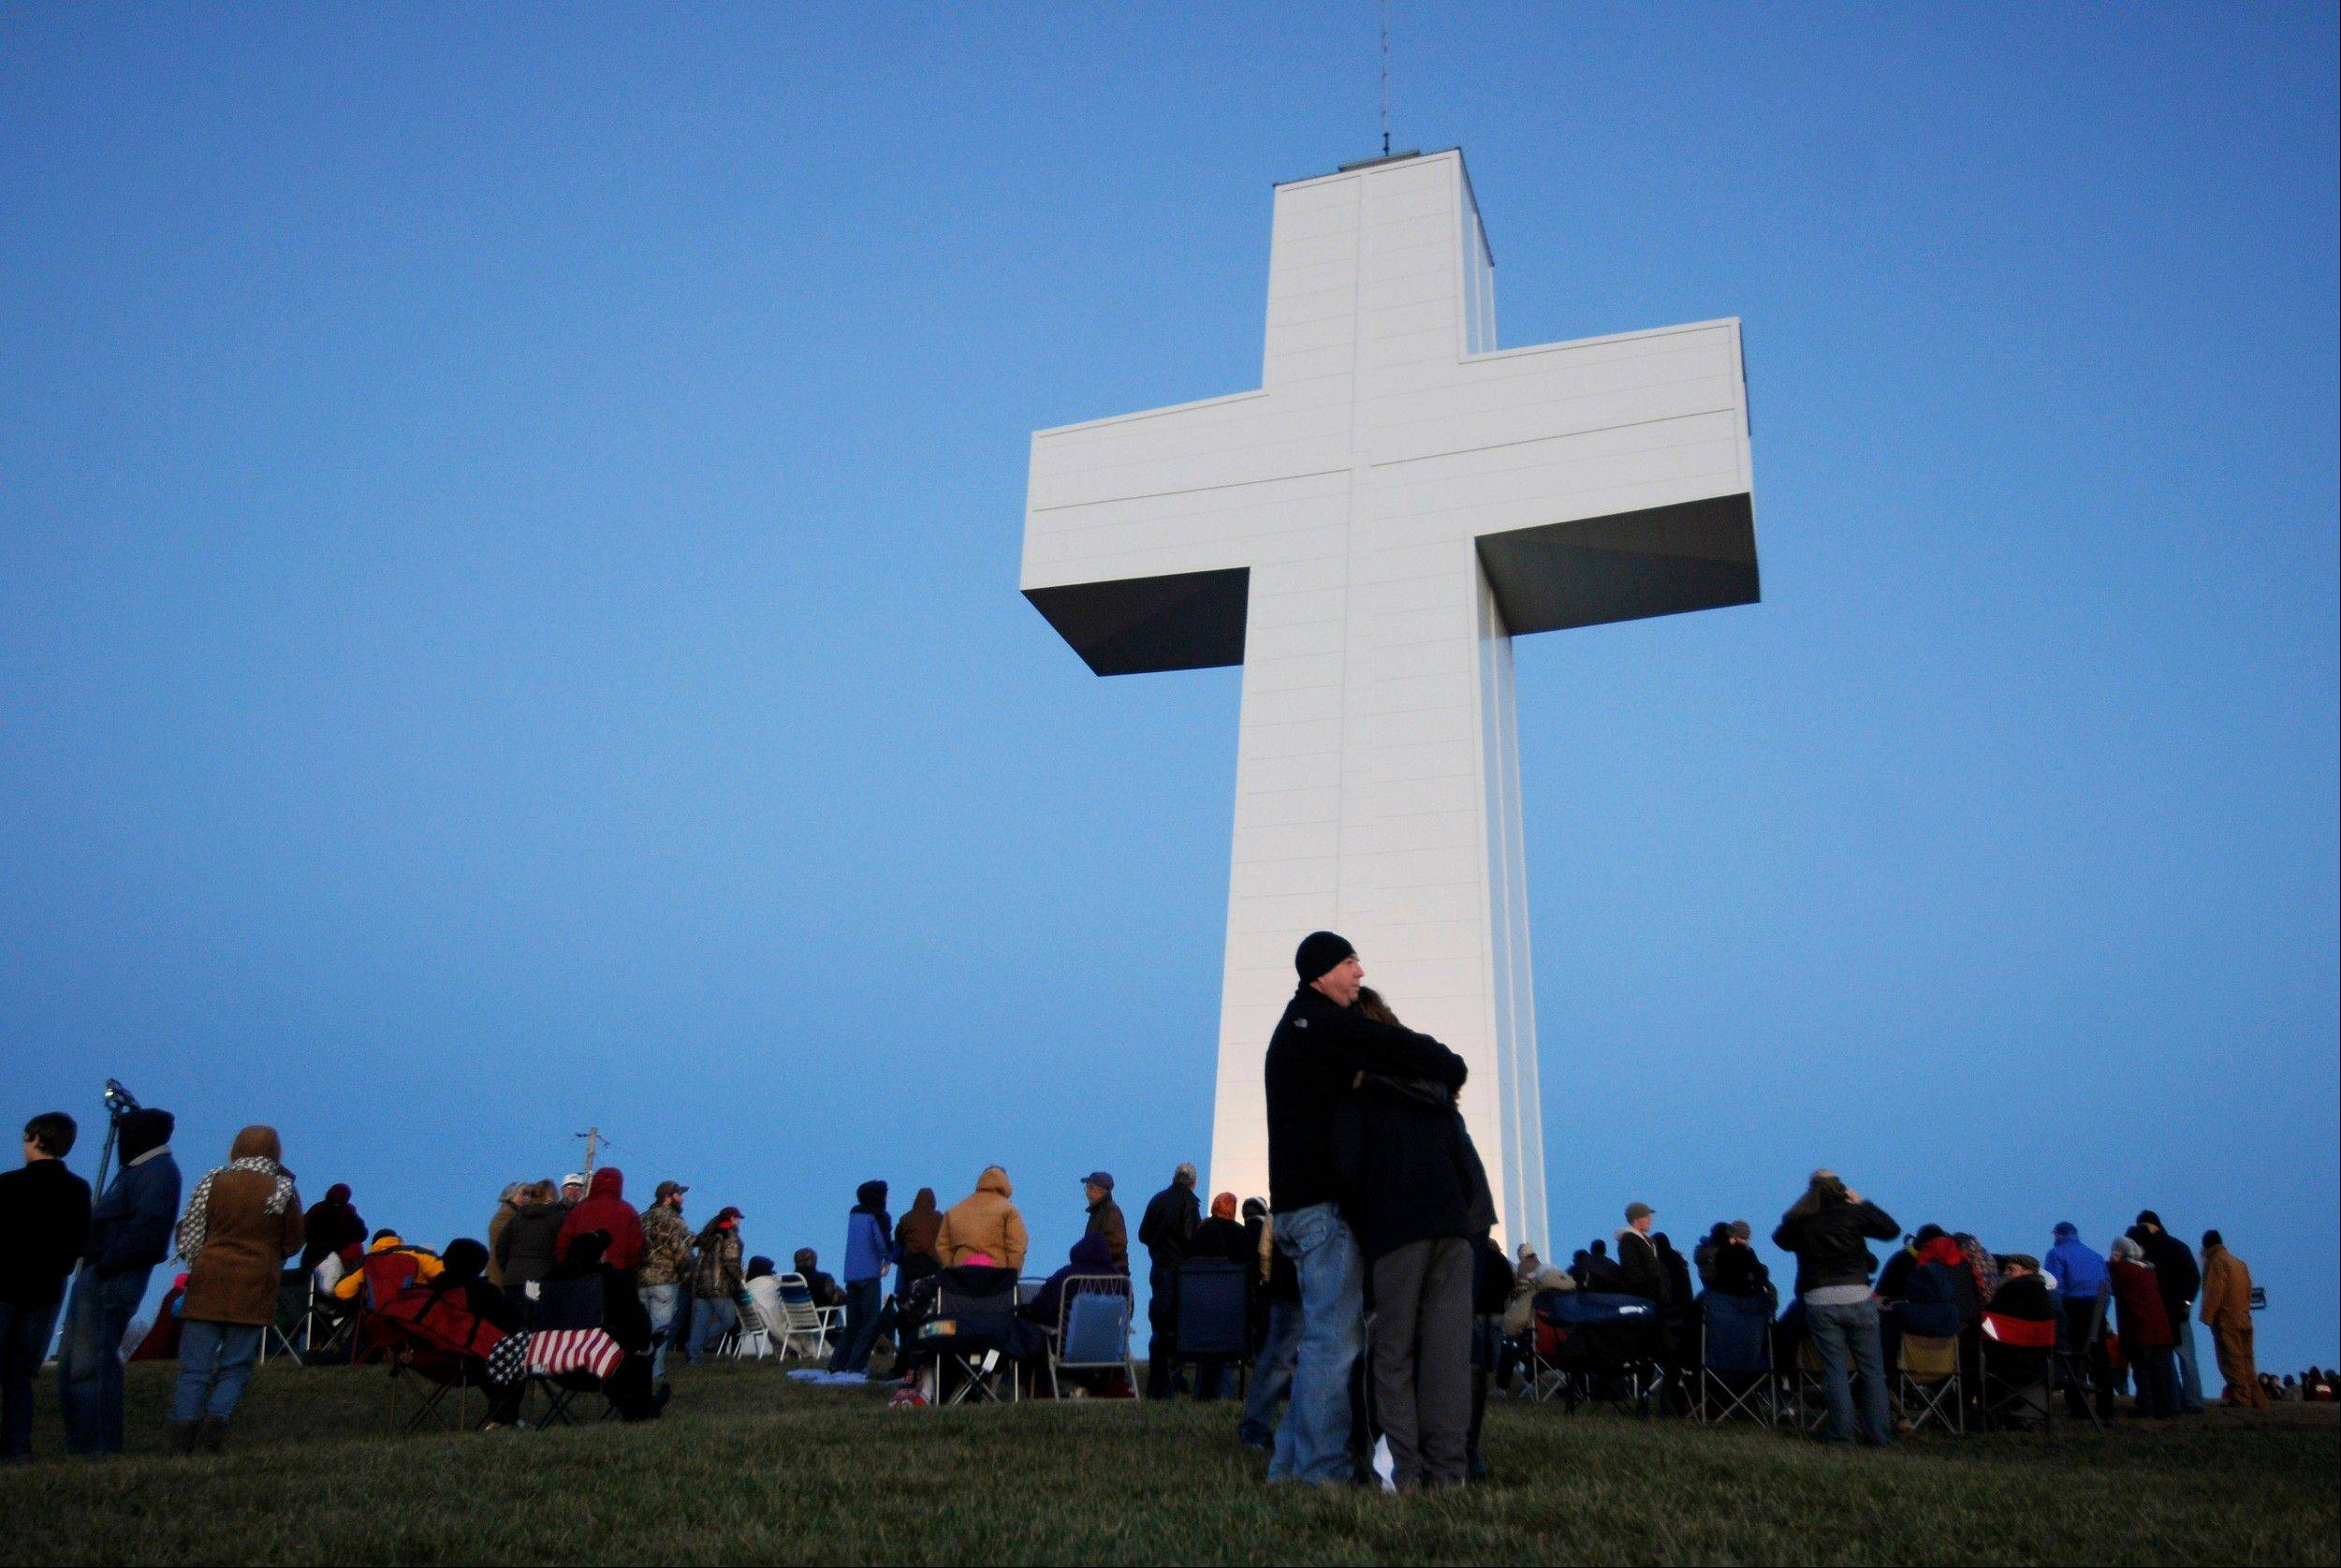 Spectators huddle together for warmth before the lighting of the Bald Knob Cross of Peace Saturday in downstate Alto Pass. The lighting ceremony marked the completion of a renovation project that began in 2009.